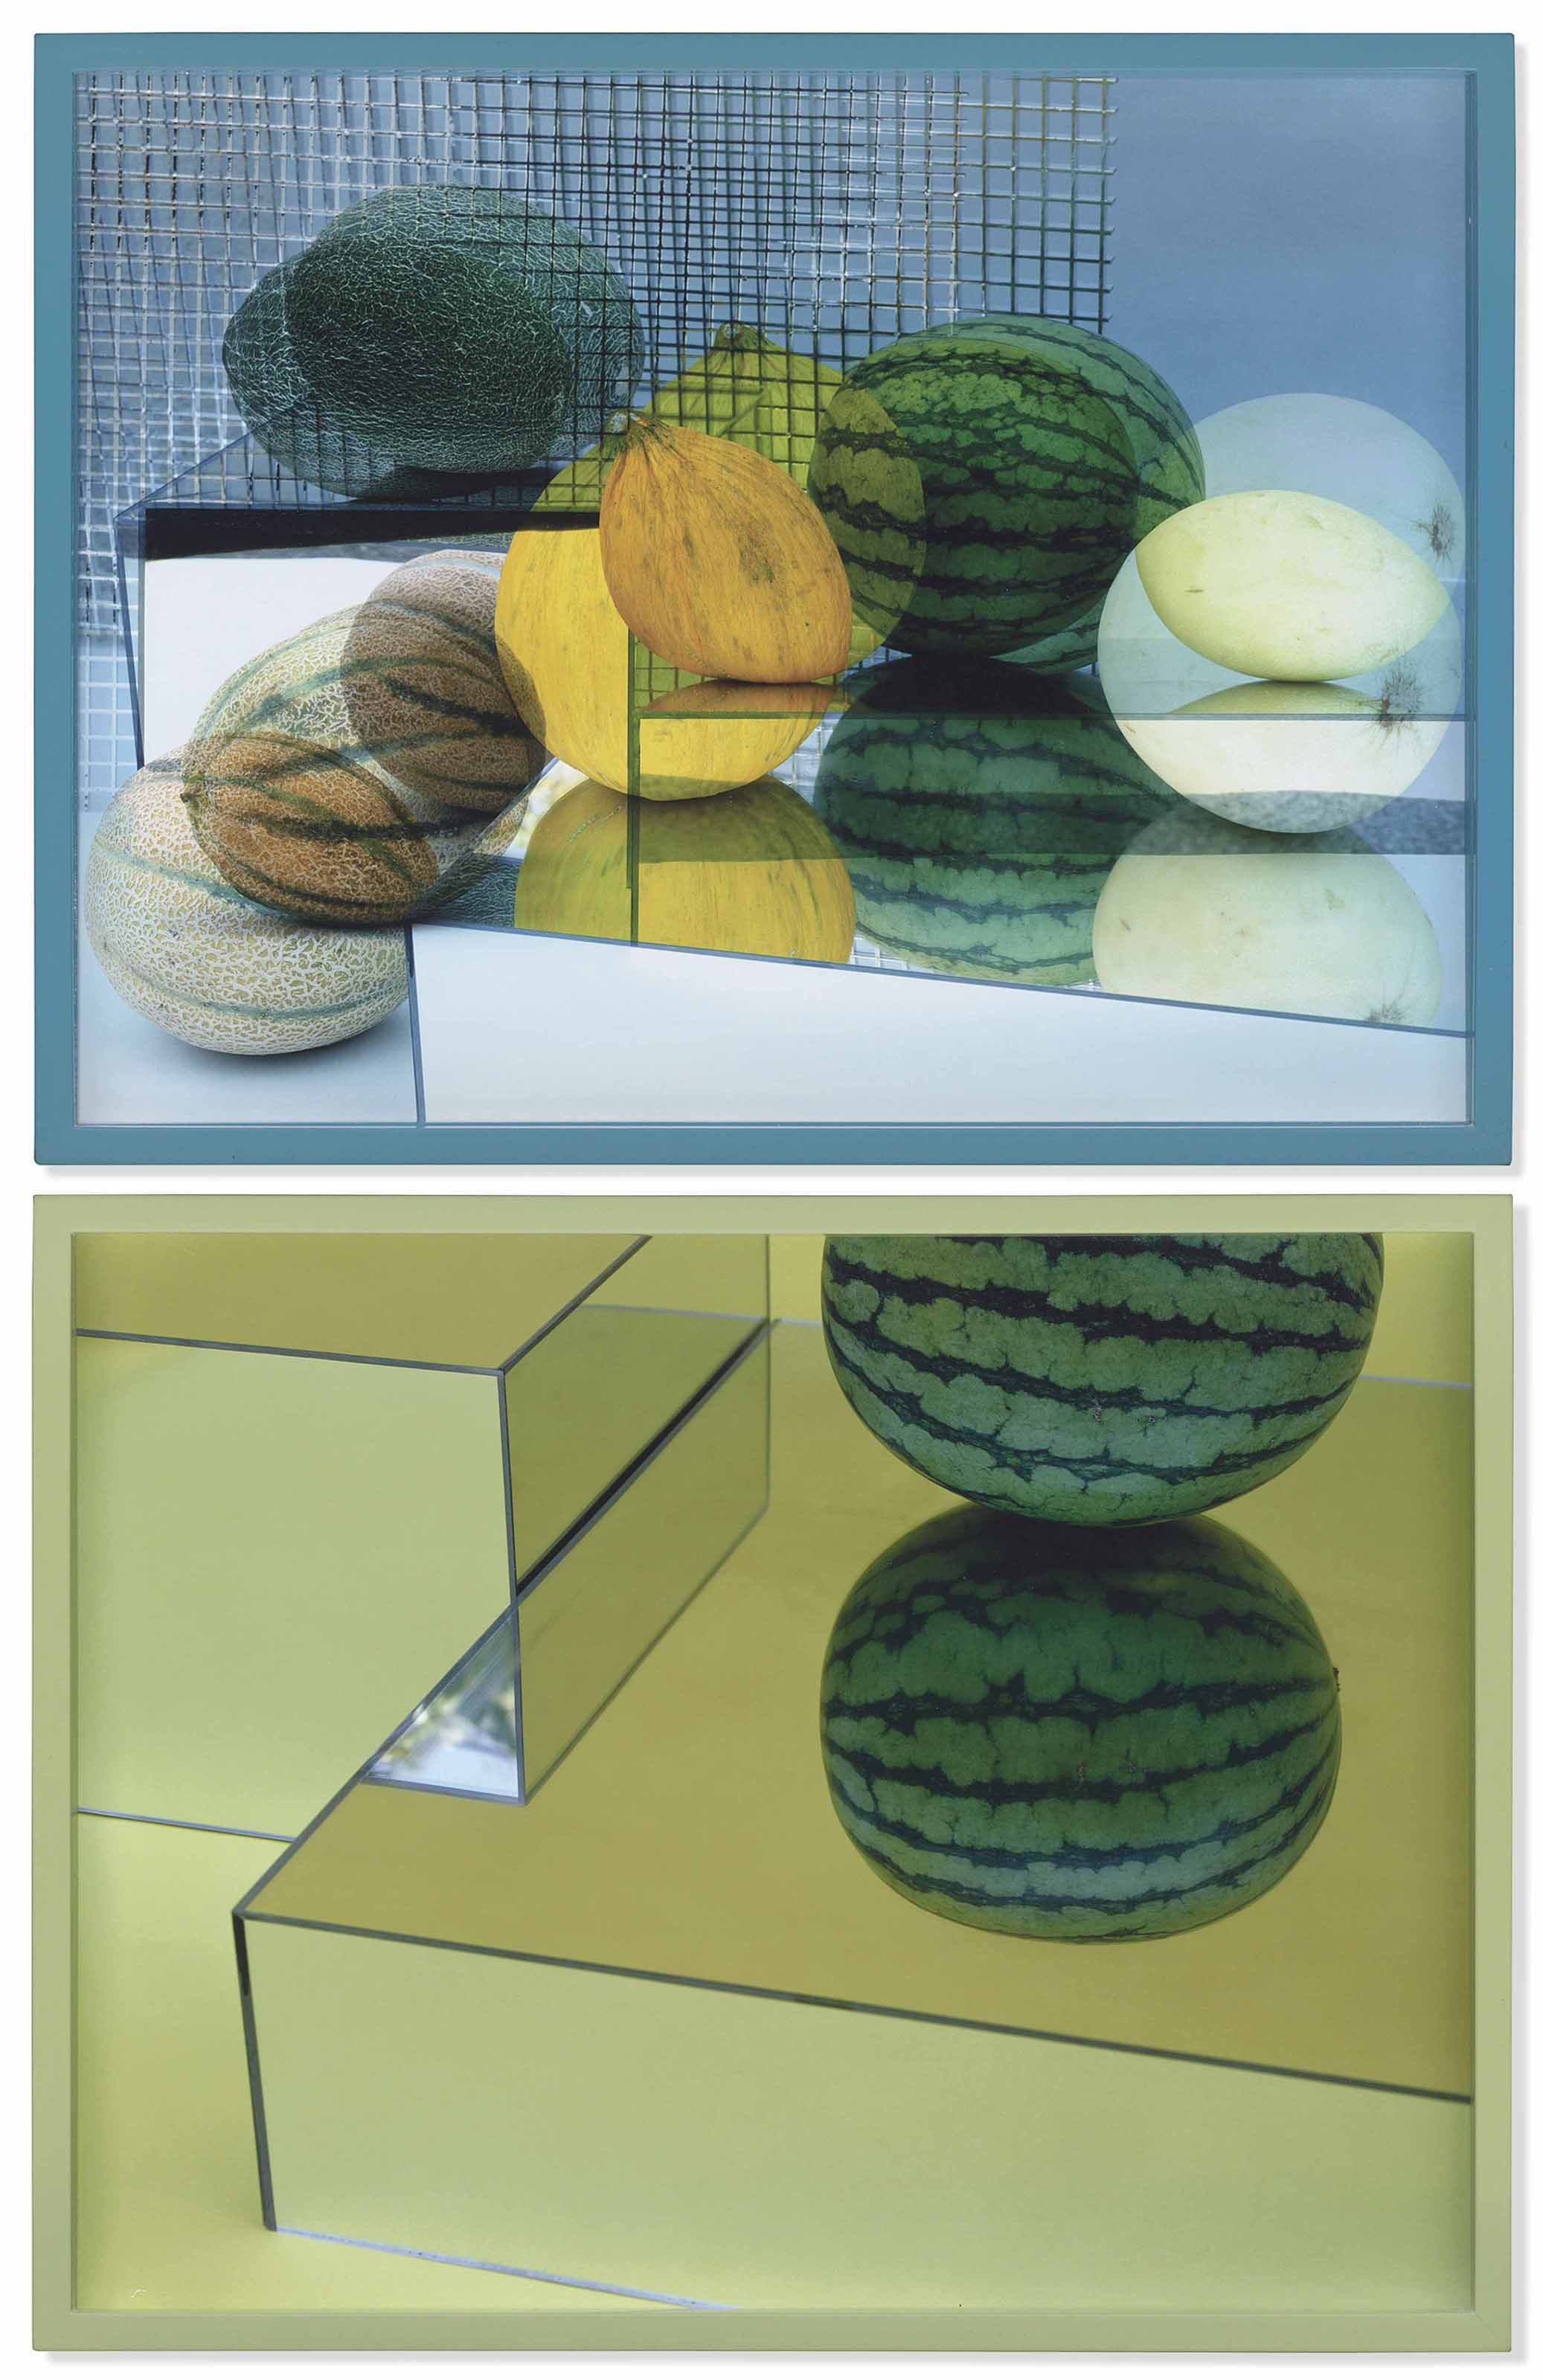 (i) Circles and Squares (A Tasteful Organic Melons Arrangement) 1 (ii) One Watermelon, Two Heads